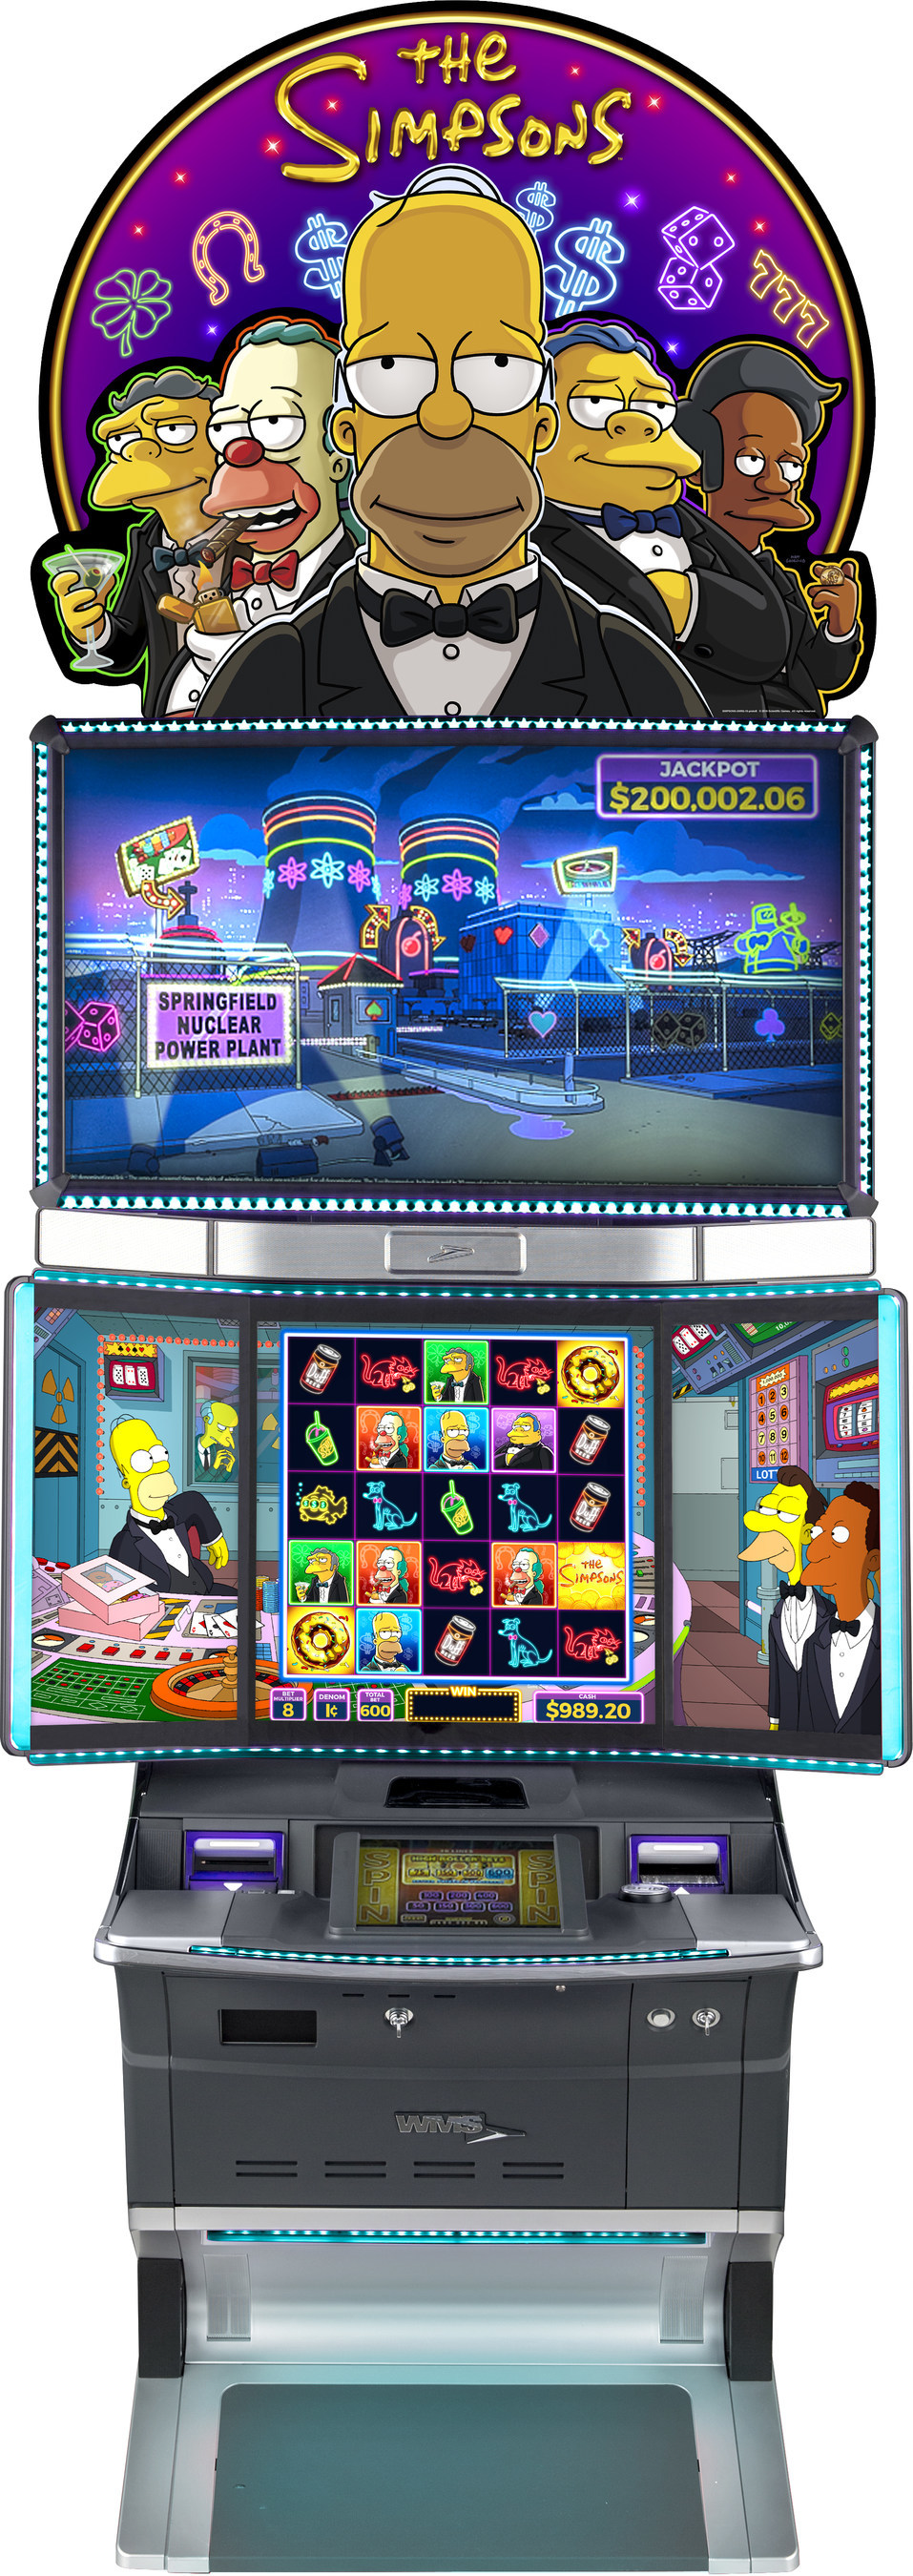 The Simpsons Slot Machine Online